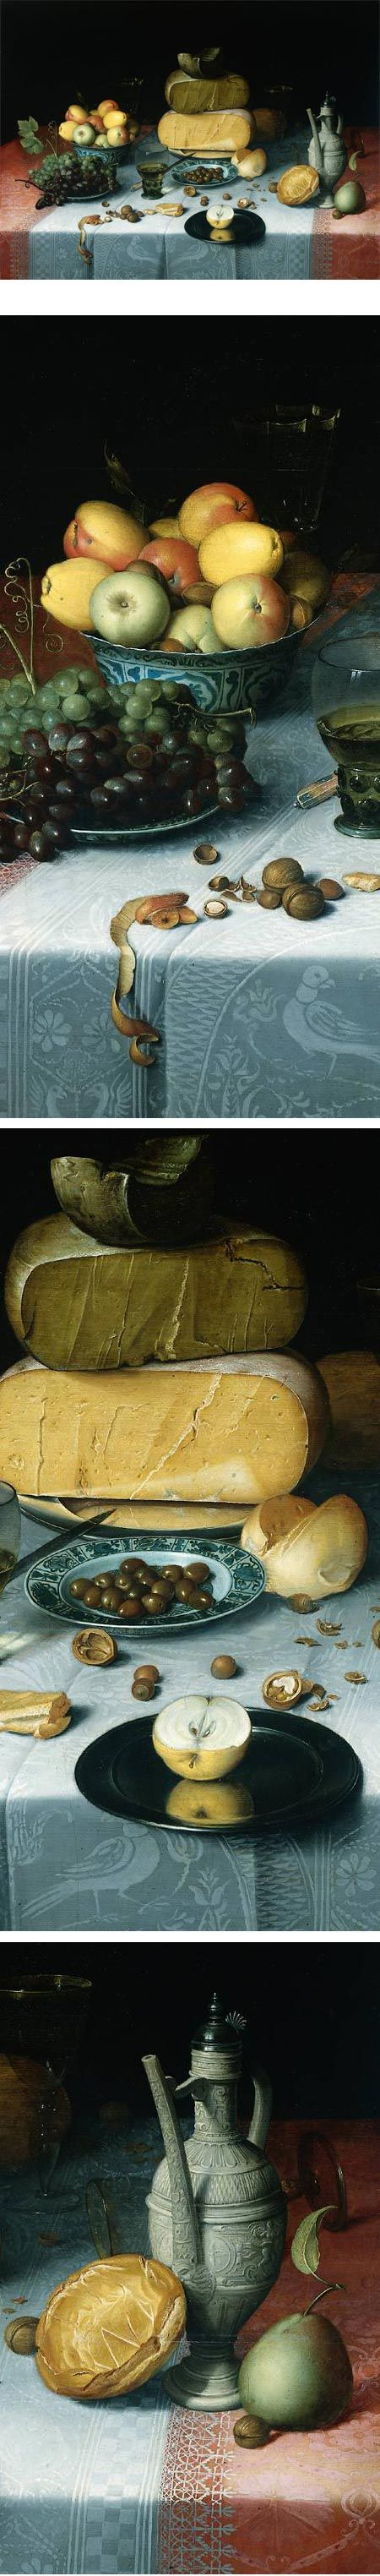 Detail from: Still Life with Cheeses by Floris van Dijck (1615-1620). Rijksmusum.: